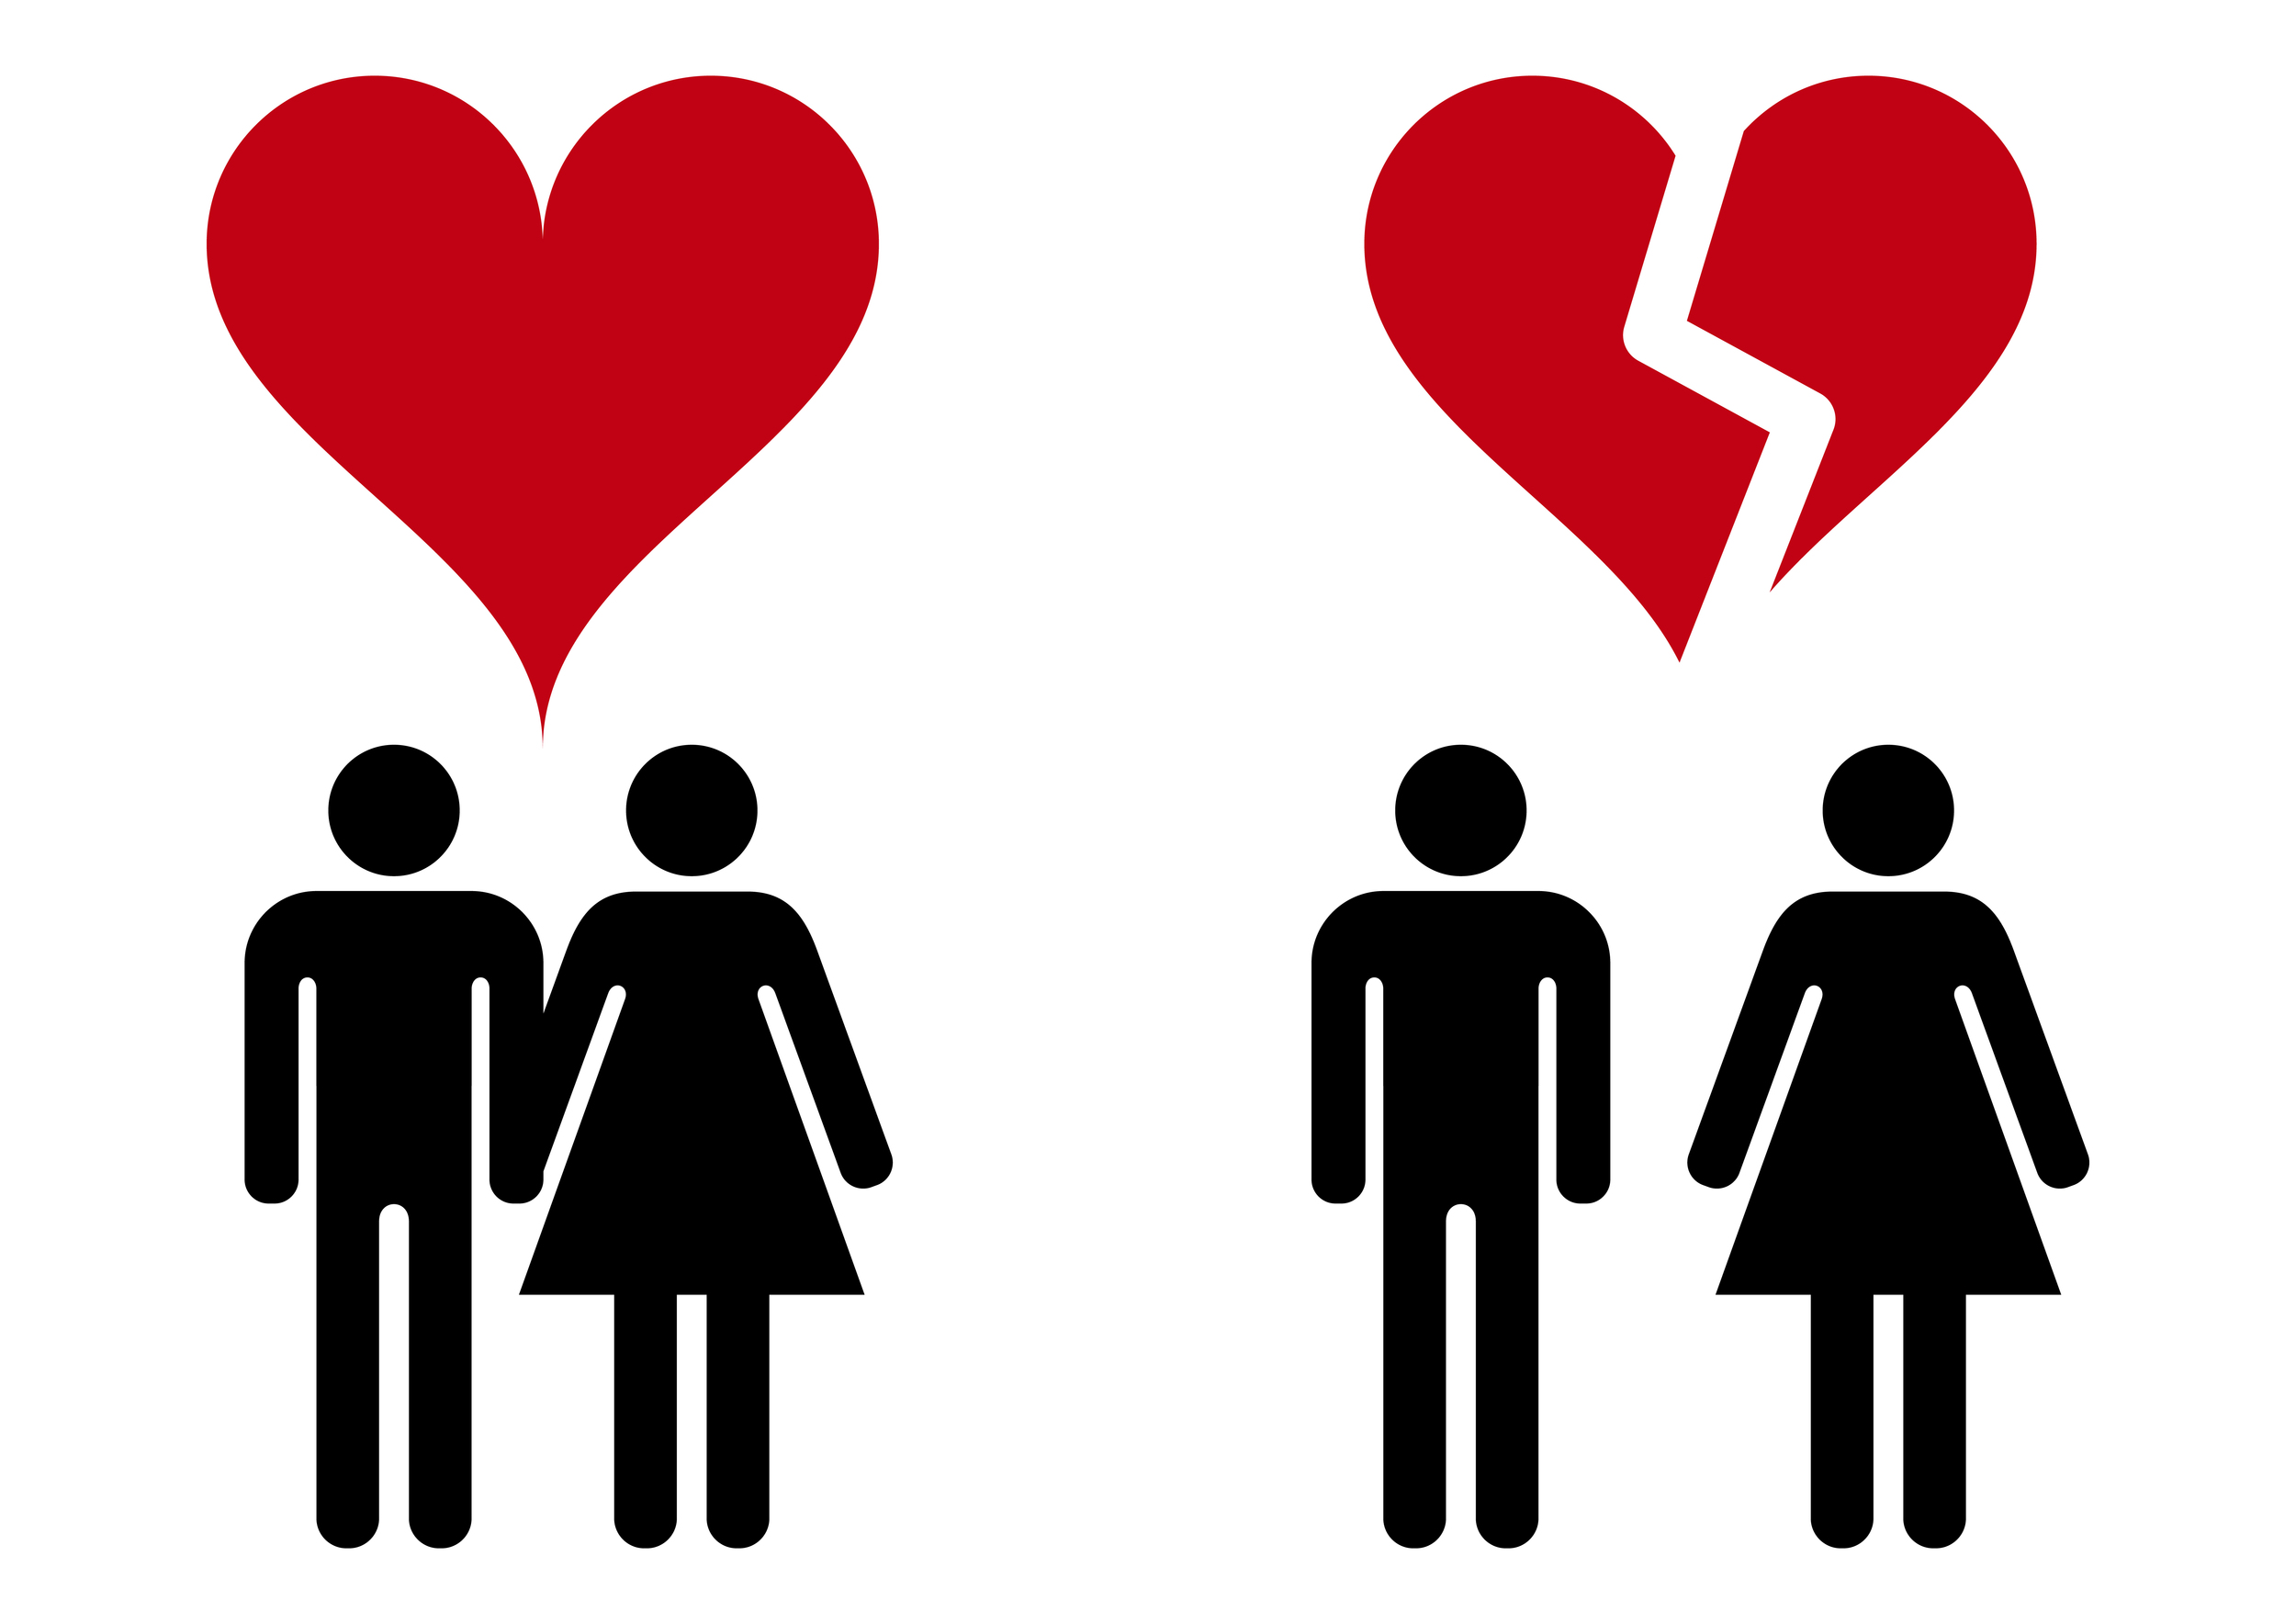 In the state of Ohio alone, nine out of 1,000 marriages end in divorce each year